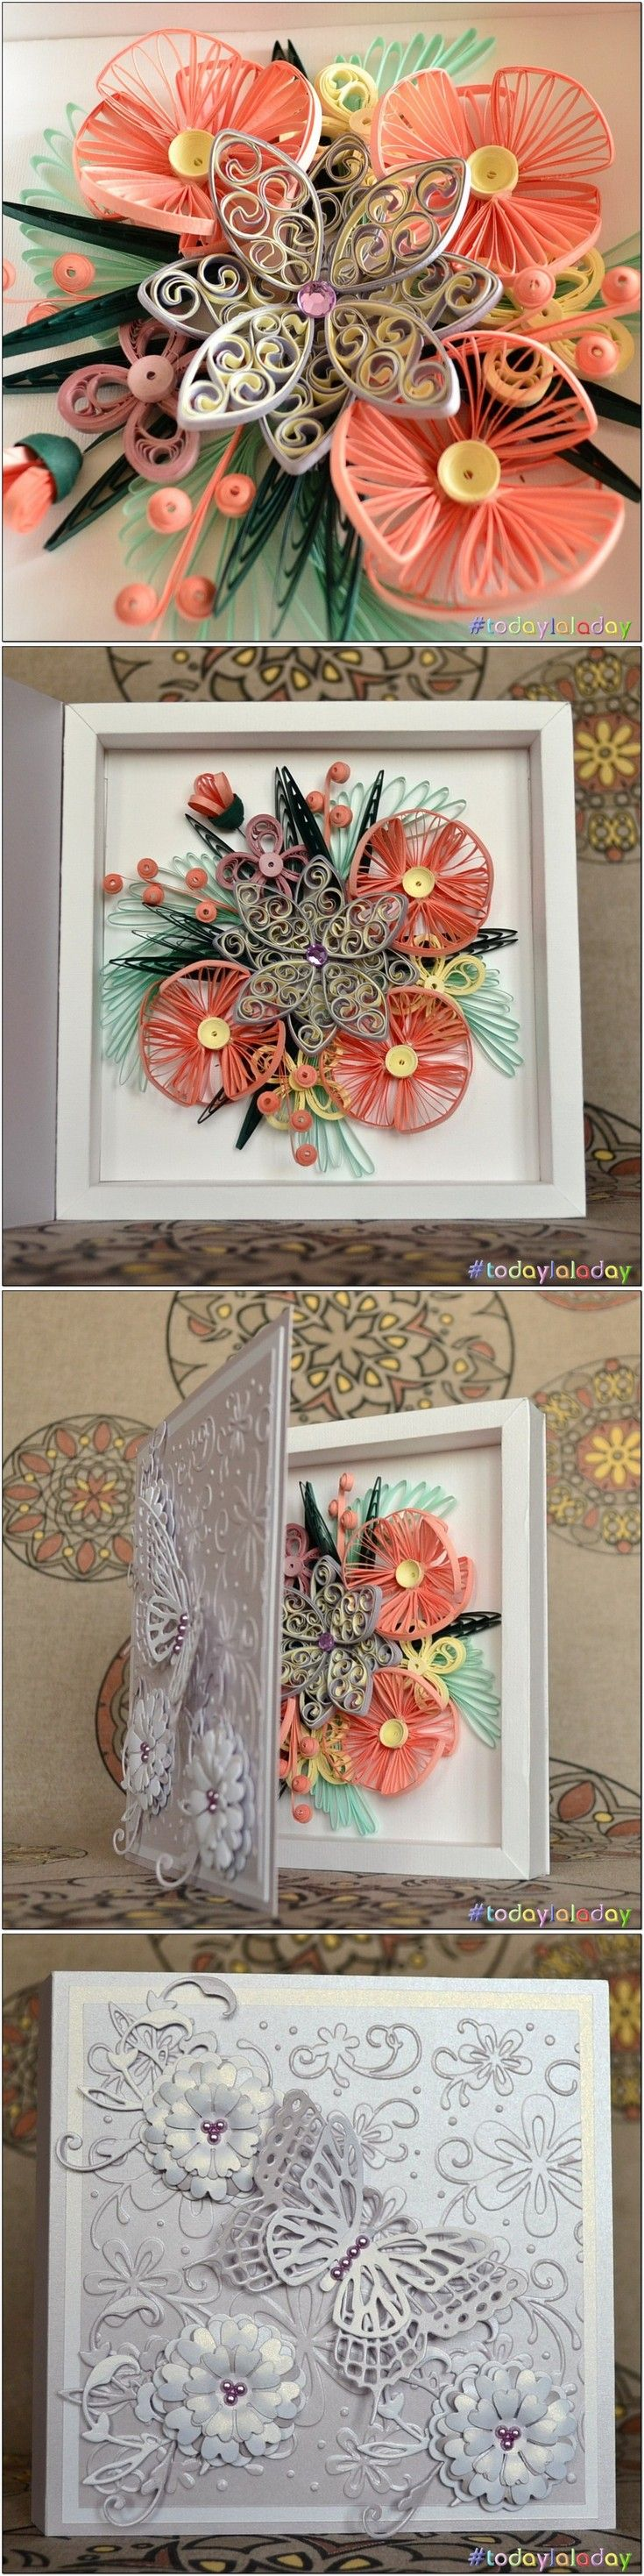 quilling card box from all sides  #quilling #quillingart #quillingflowers #todaylaladay